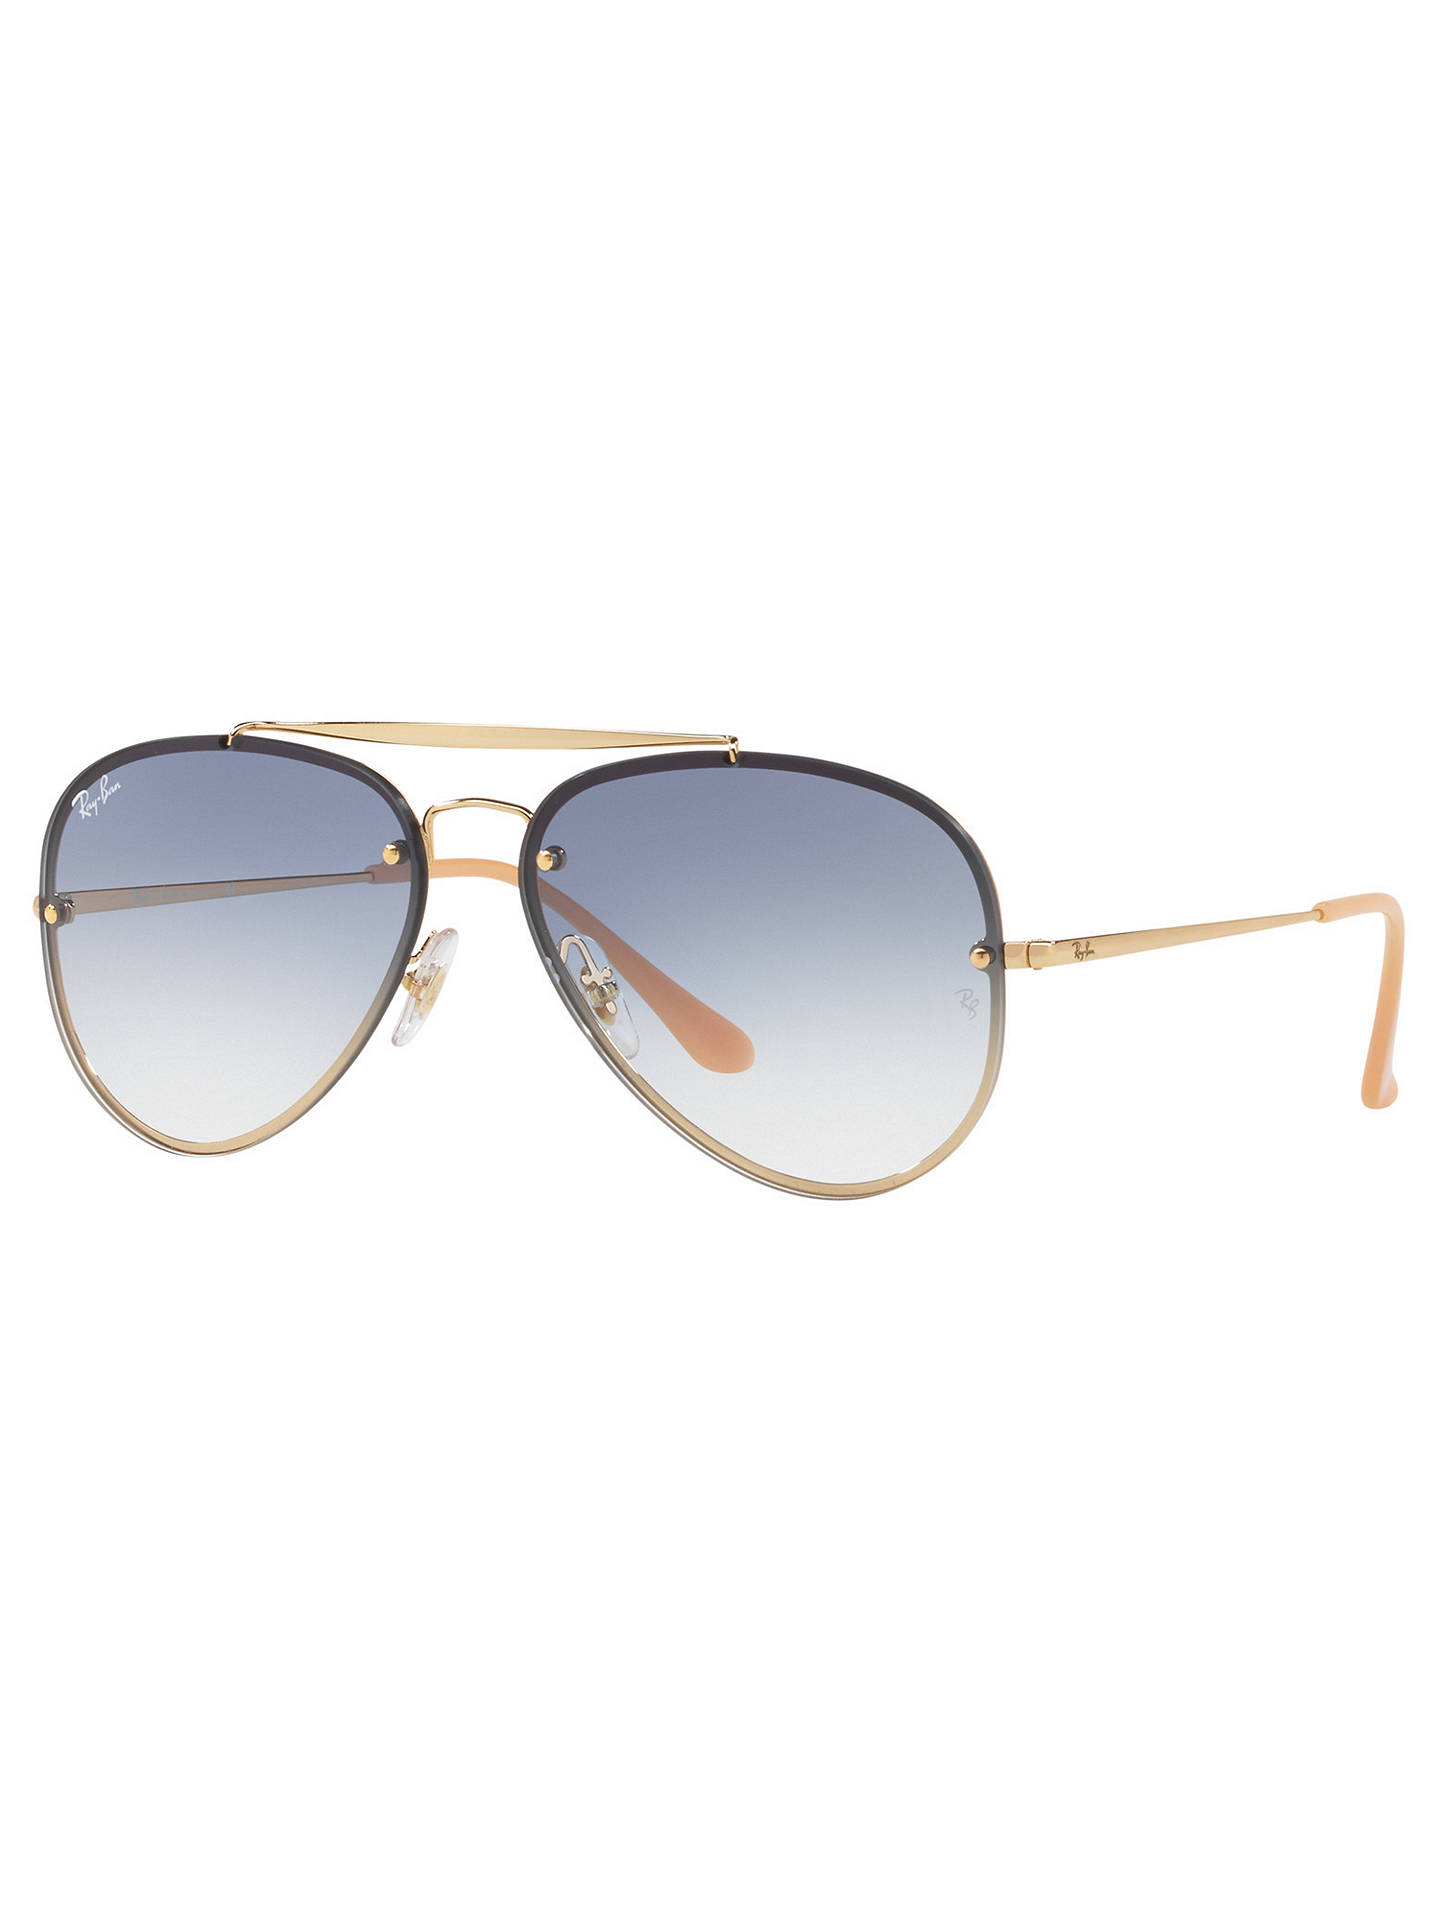 470d1e9c4fa3c Buy Ray-Ban RB3584N Blaze Aviator Sunglasses